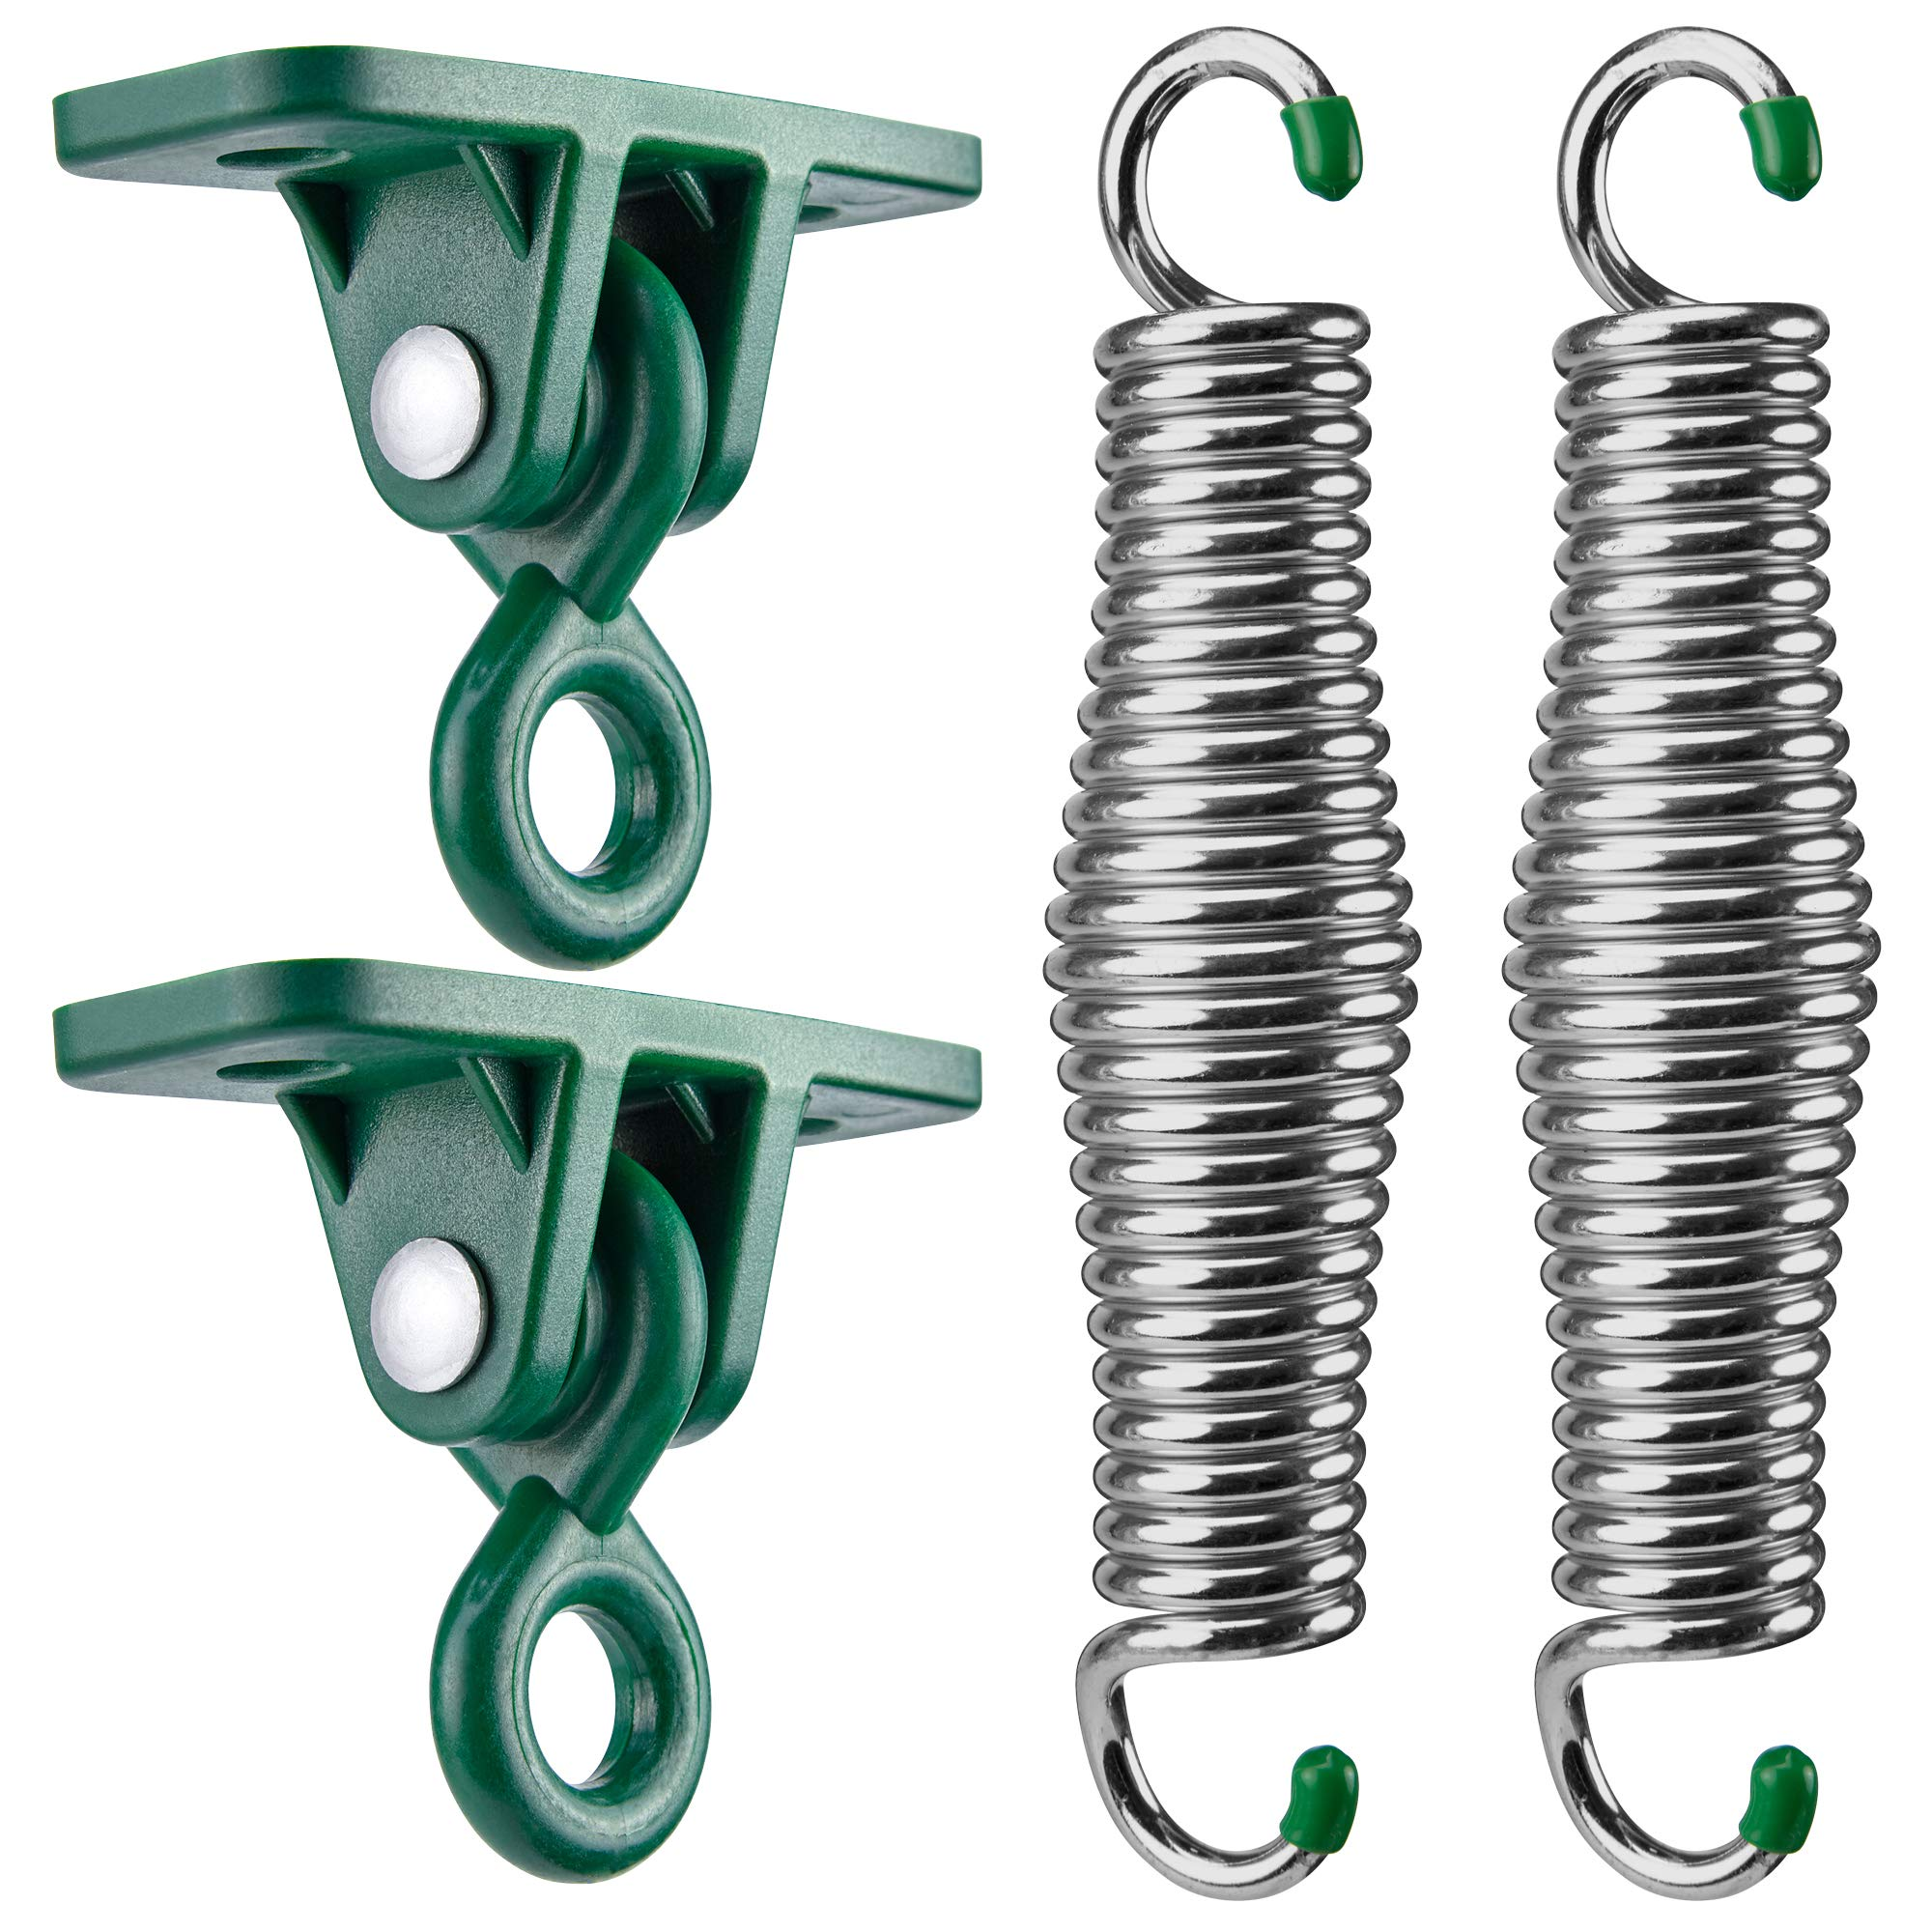 SwingMate Porch Swing Hanging Kit - 750 Lbs Capacity, with Heavy-Duty Suspension Swing Hangers, Safe for Hammock Chairs or Ceiling Mount Porch Swings - Rust Resistant Springs (Chrome) by SWING-MATE